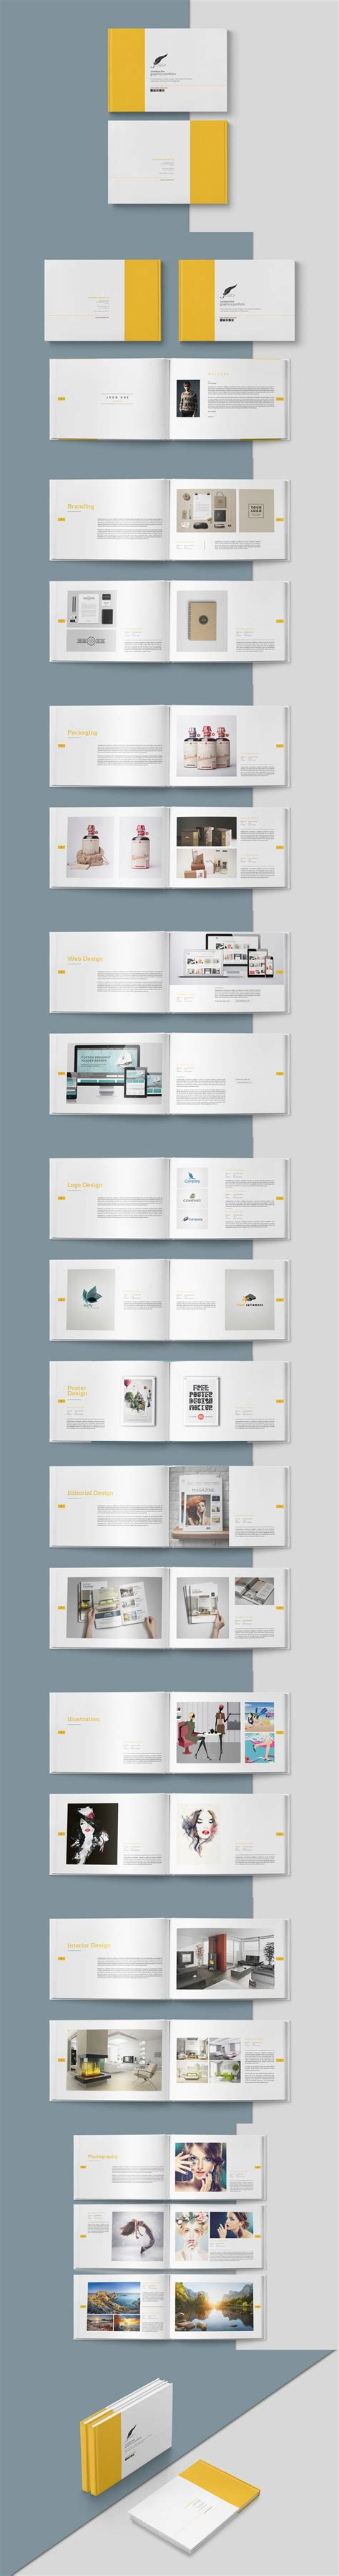 layout design indesign best 25 brochure cover ideas on pinterest brochure